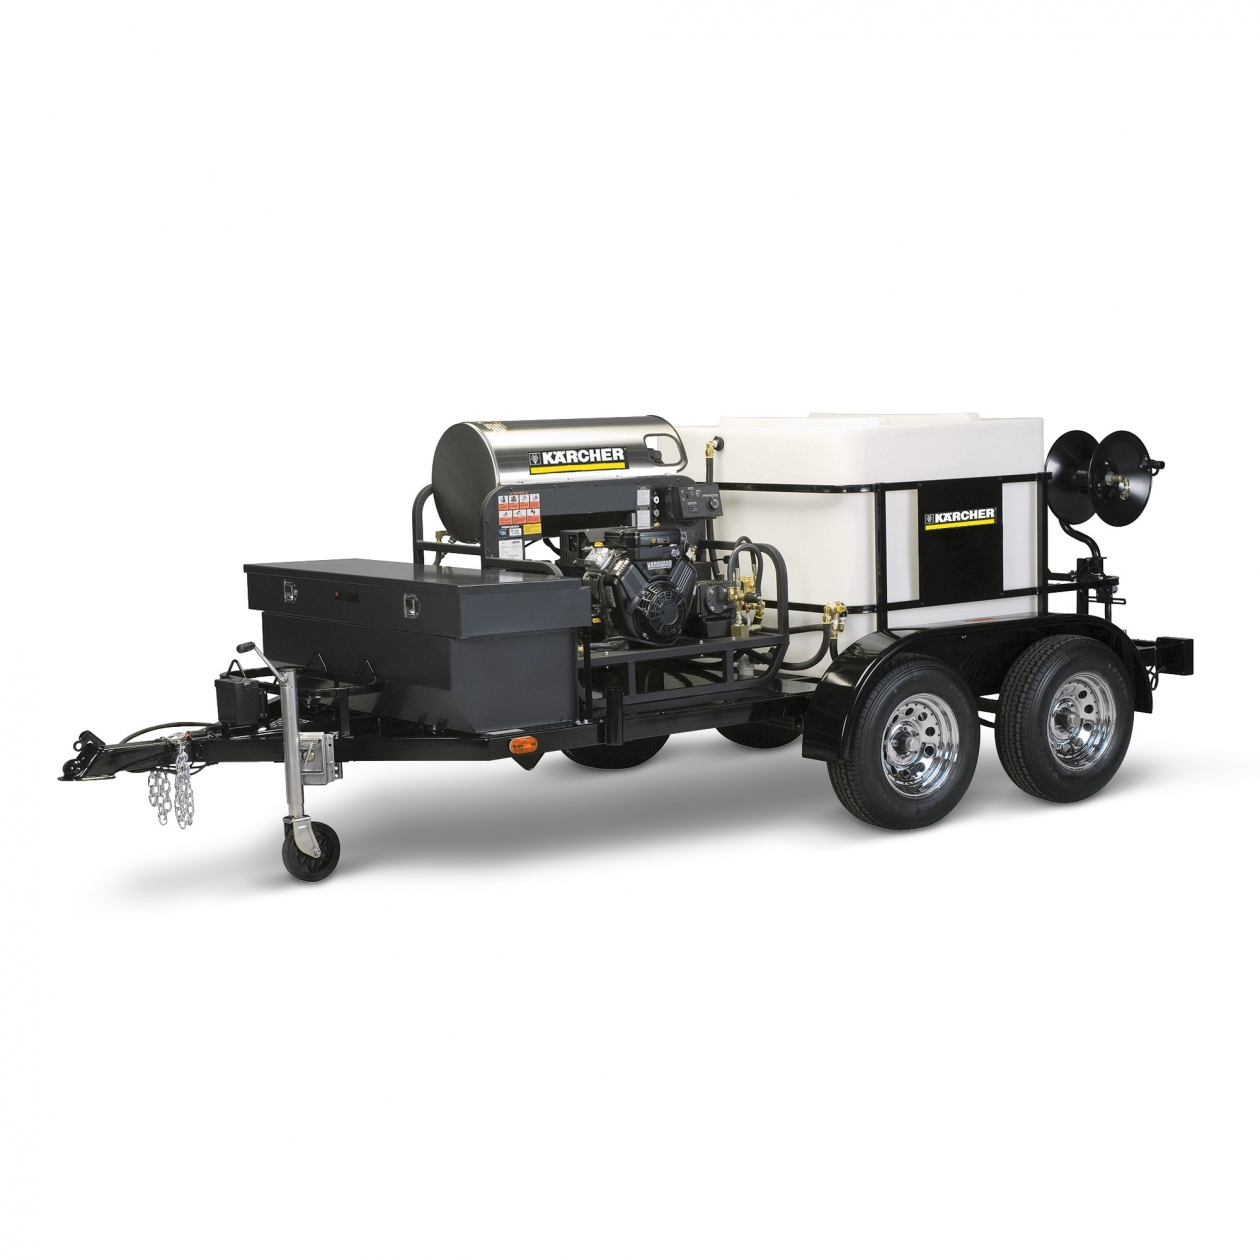 Pressure Washer Trailer Package for Sale in Houston, Texas 77060 at ...